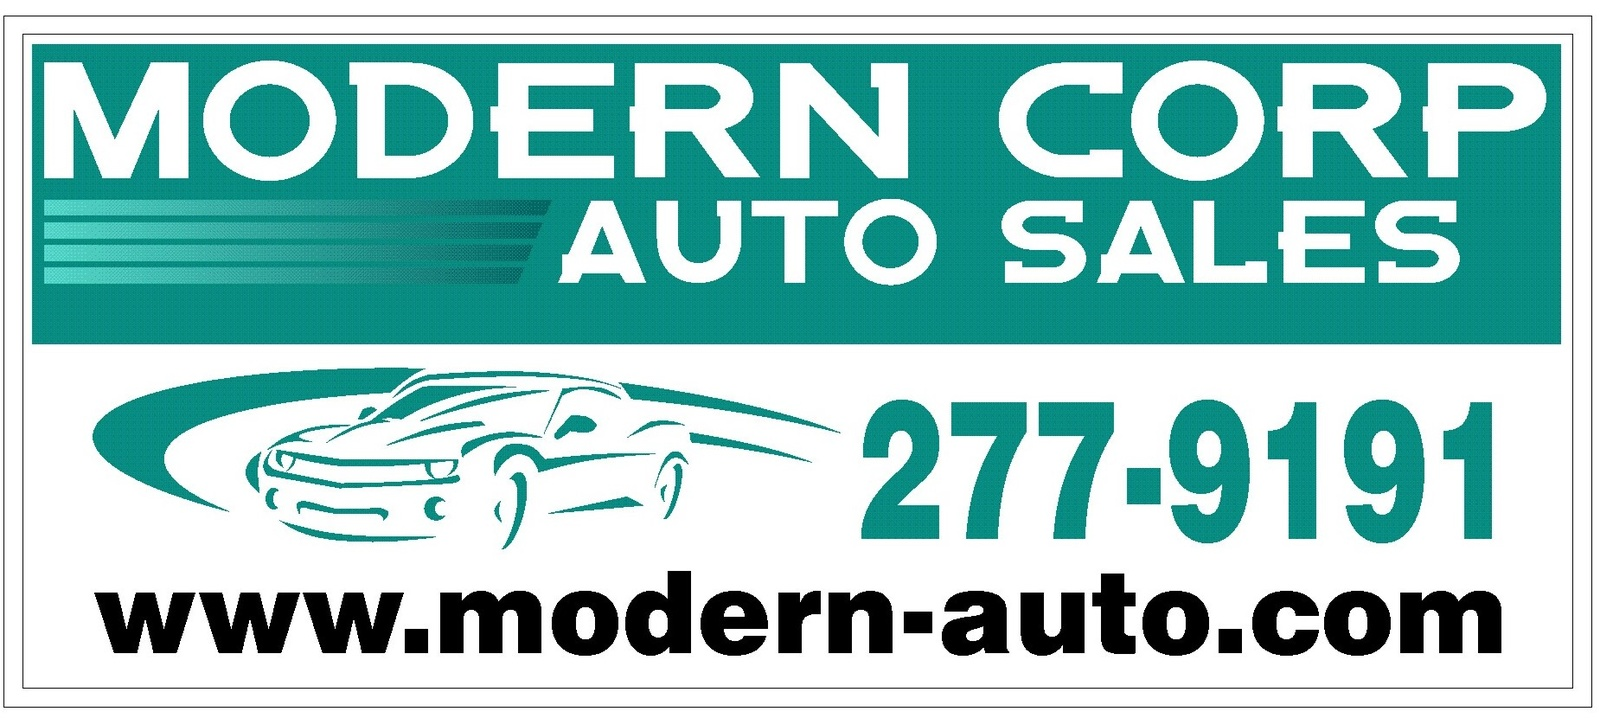 Jeep Dealers Cleveland >> Modern Corporation Auto Sales - Fort Myers, FL: Read Consumer reviews, Browse Used and New Cars ...